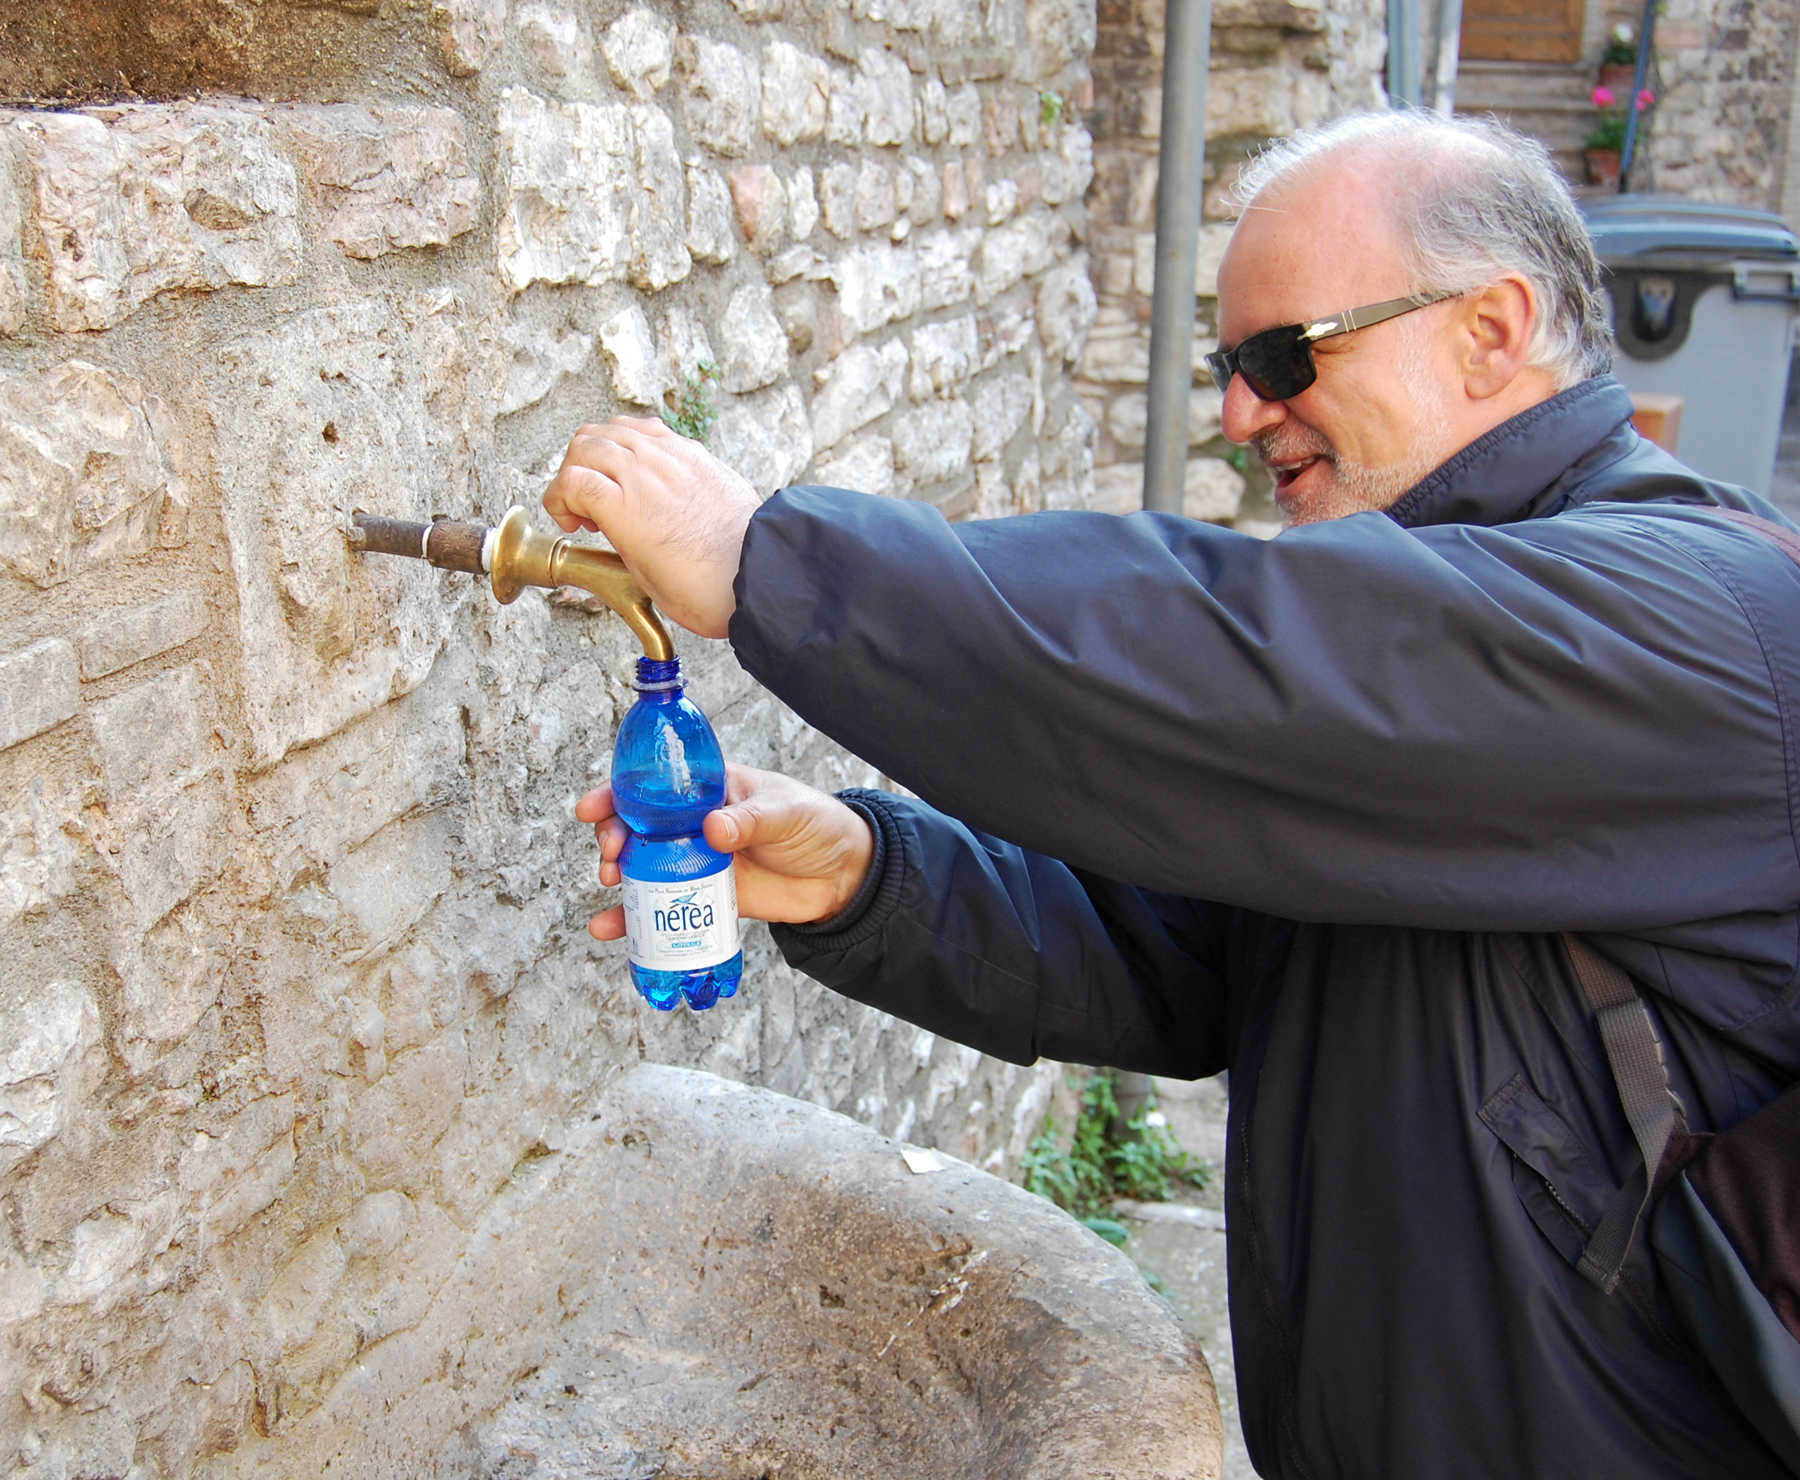 Public Drinking Water, Assisi, Italy